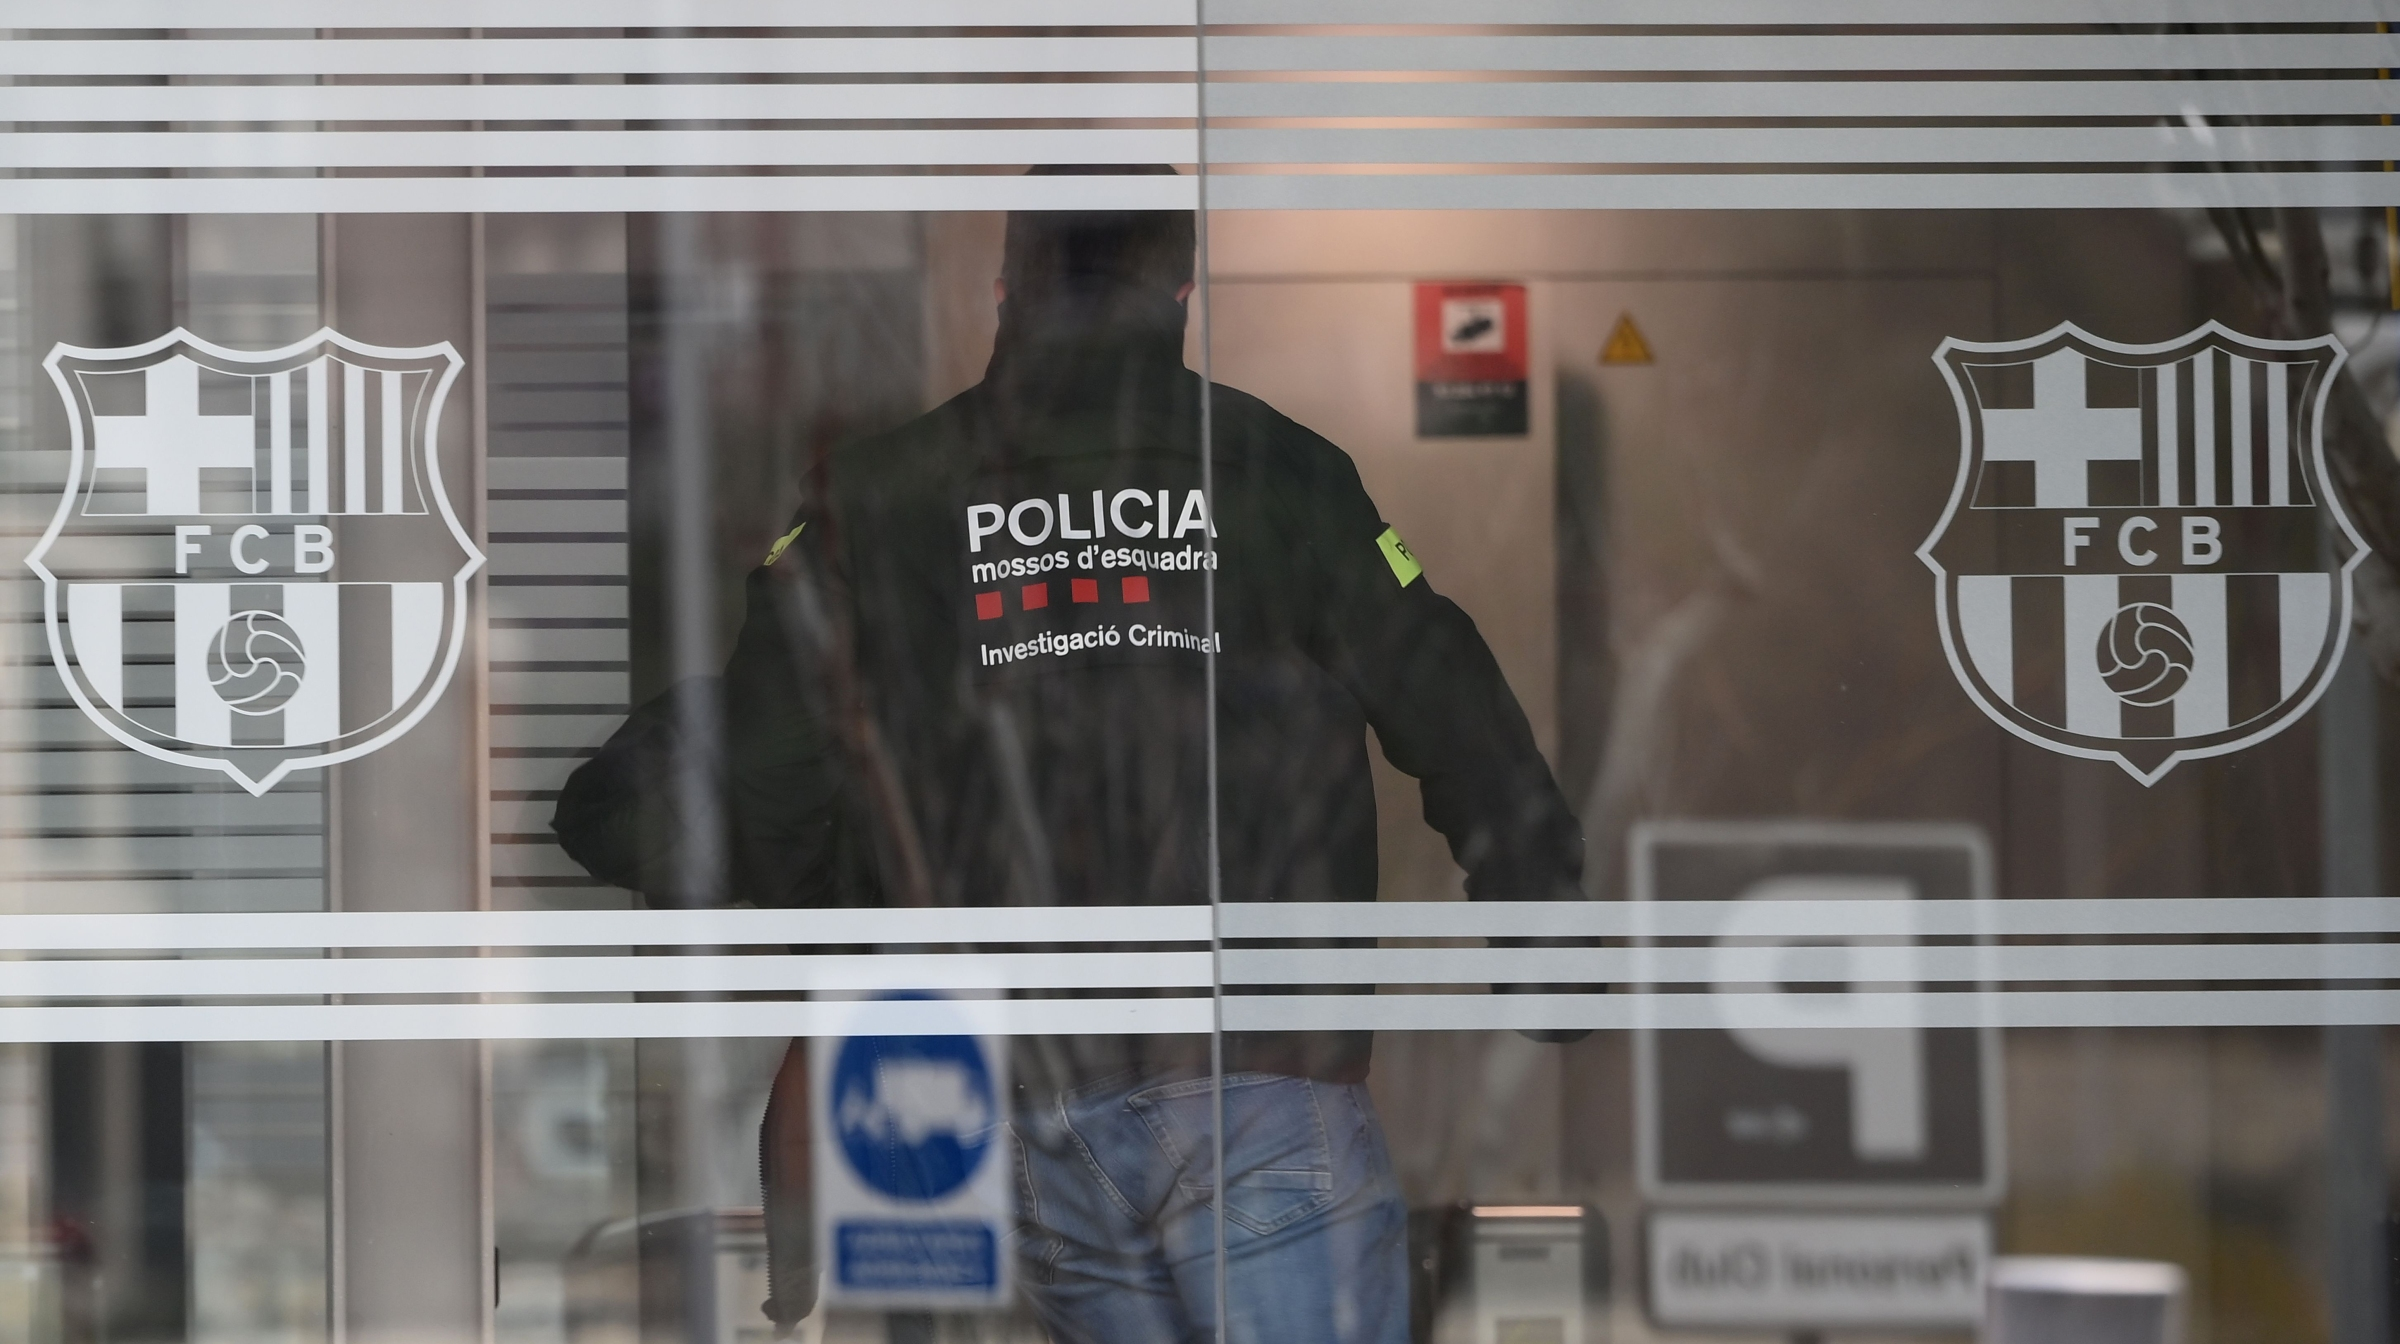 A policeman enters the offices of the Barcelona Football Club on March 01, 2021 in Barcelona during a police operation inside the building.